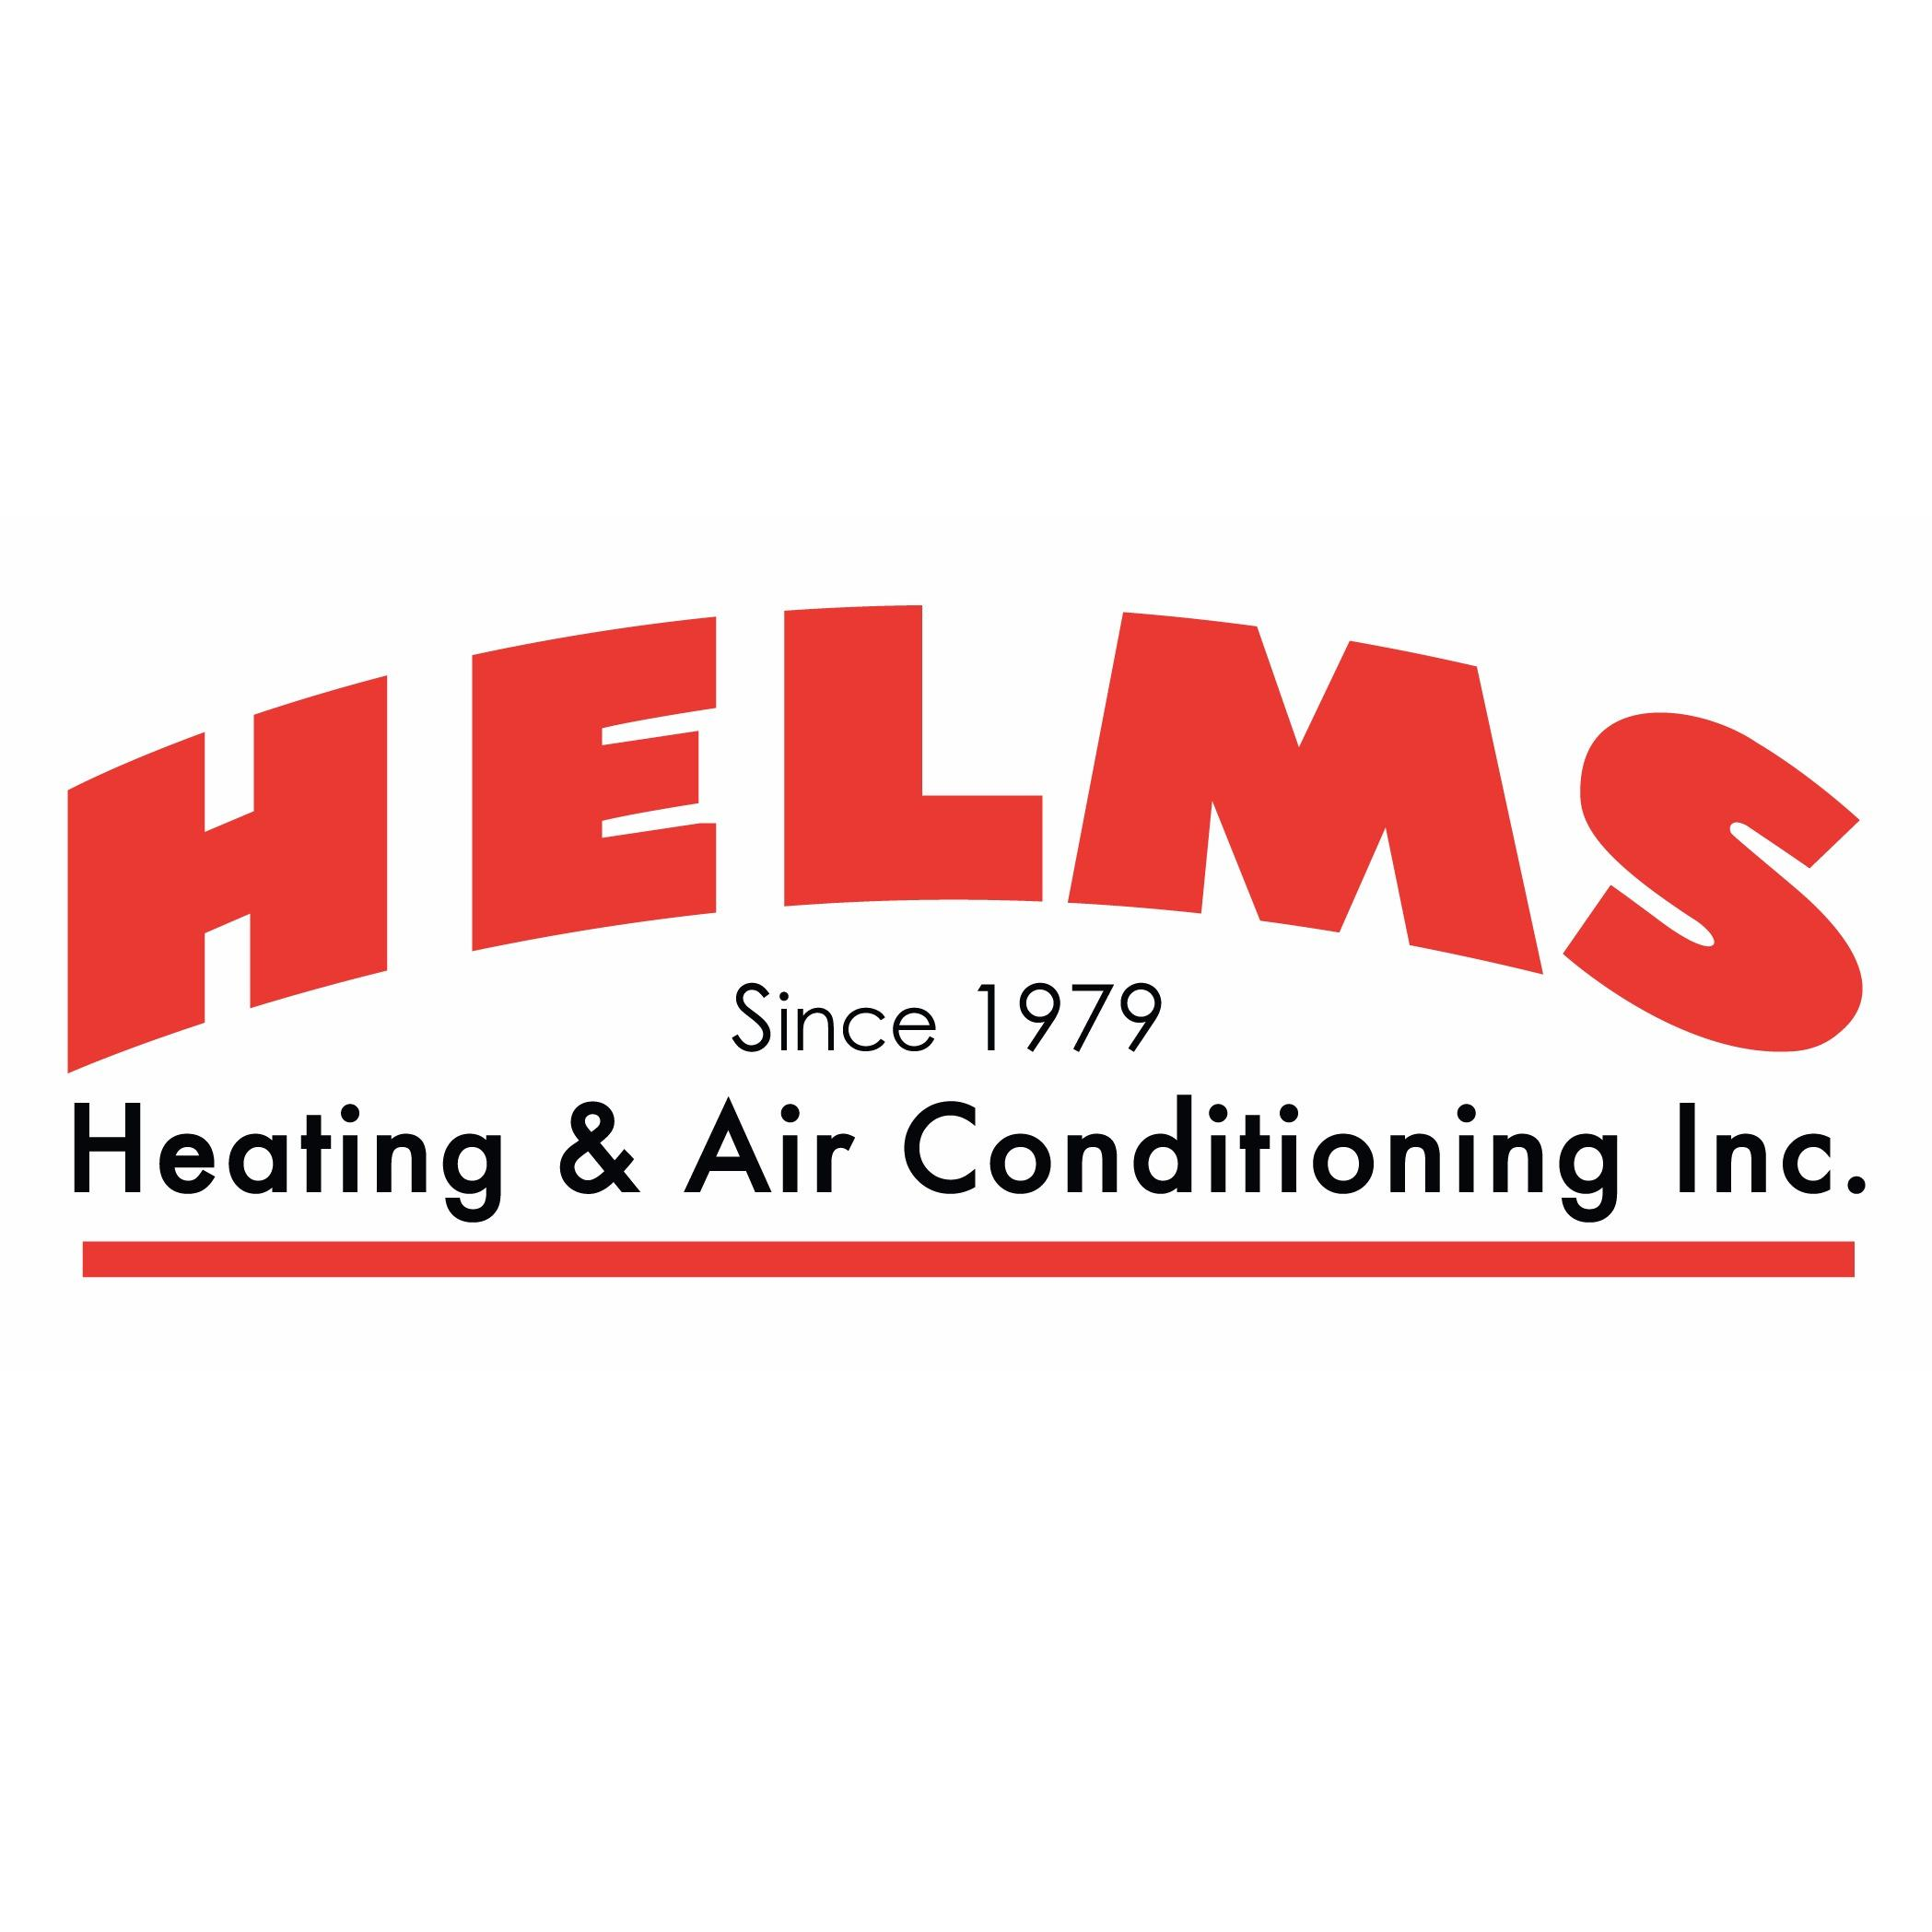 Helm's Heating & Air Conditioning Inc. image 1